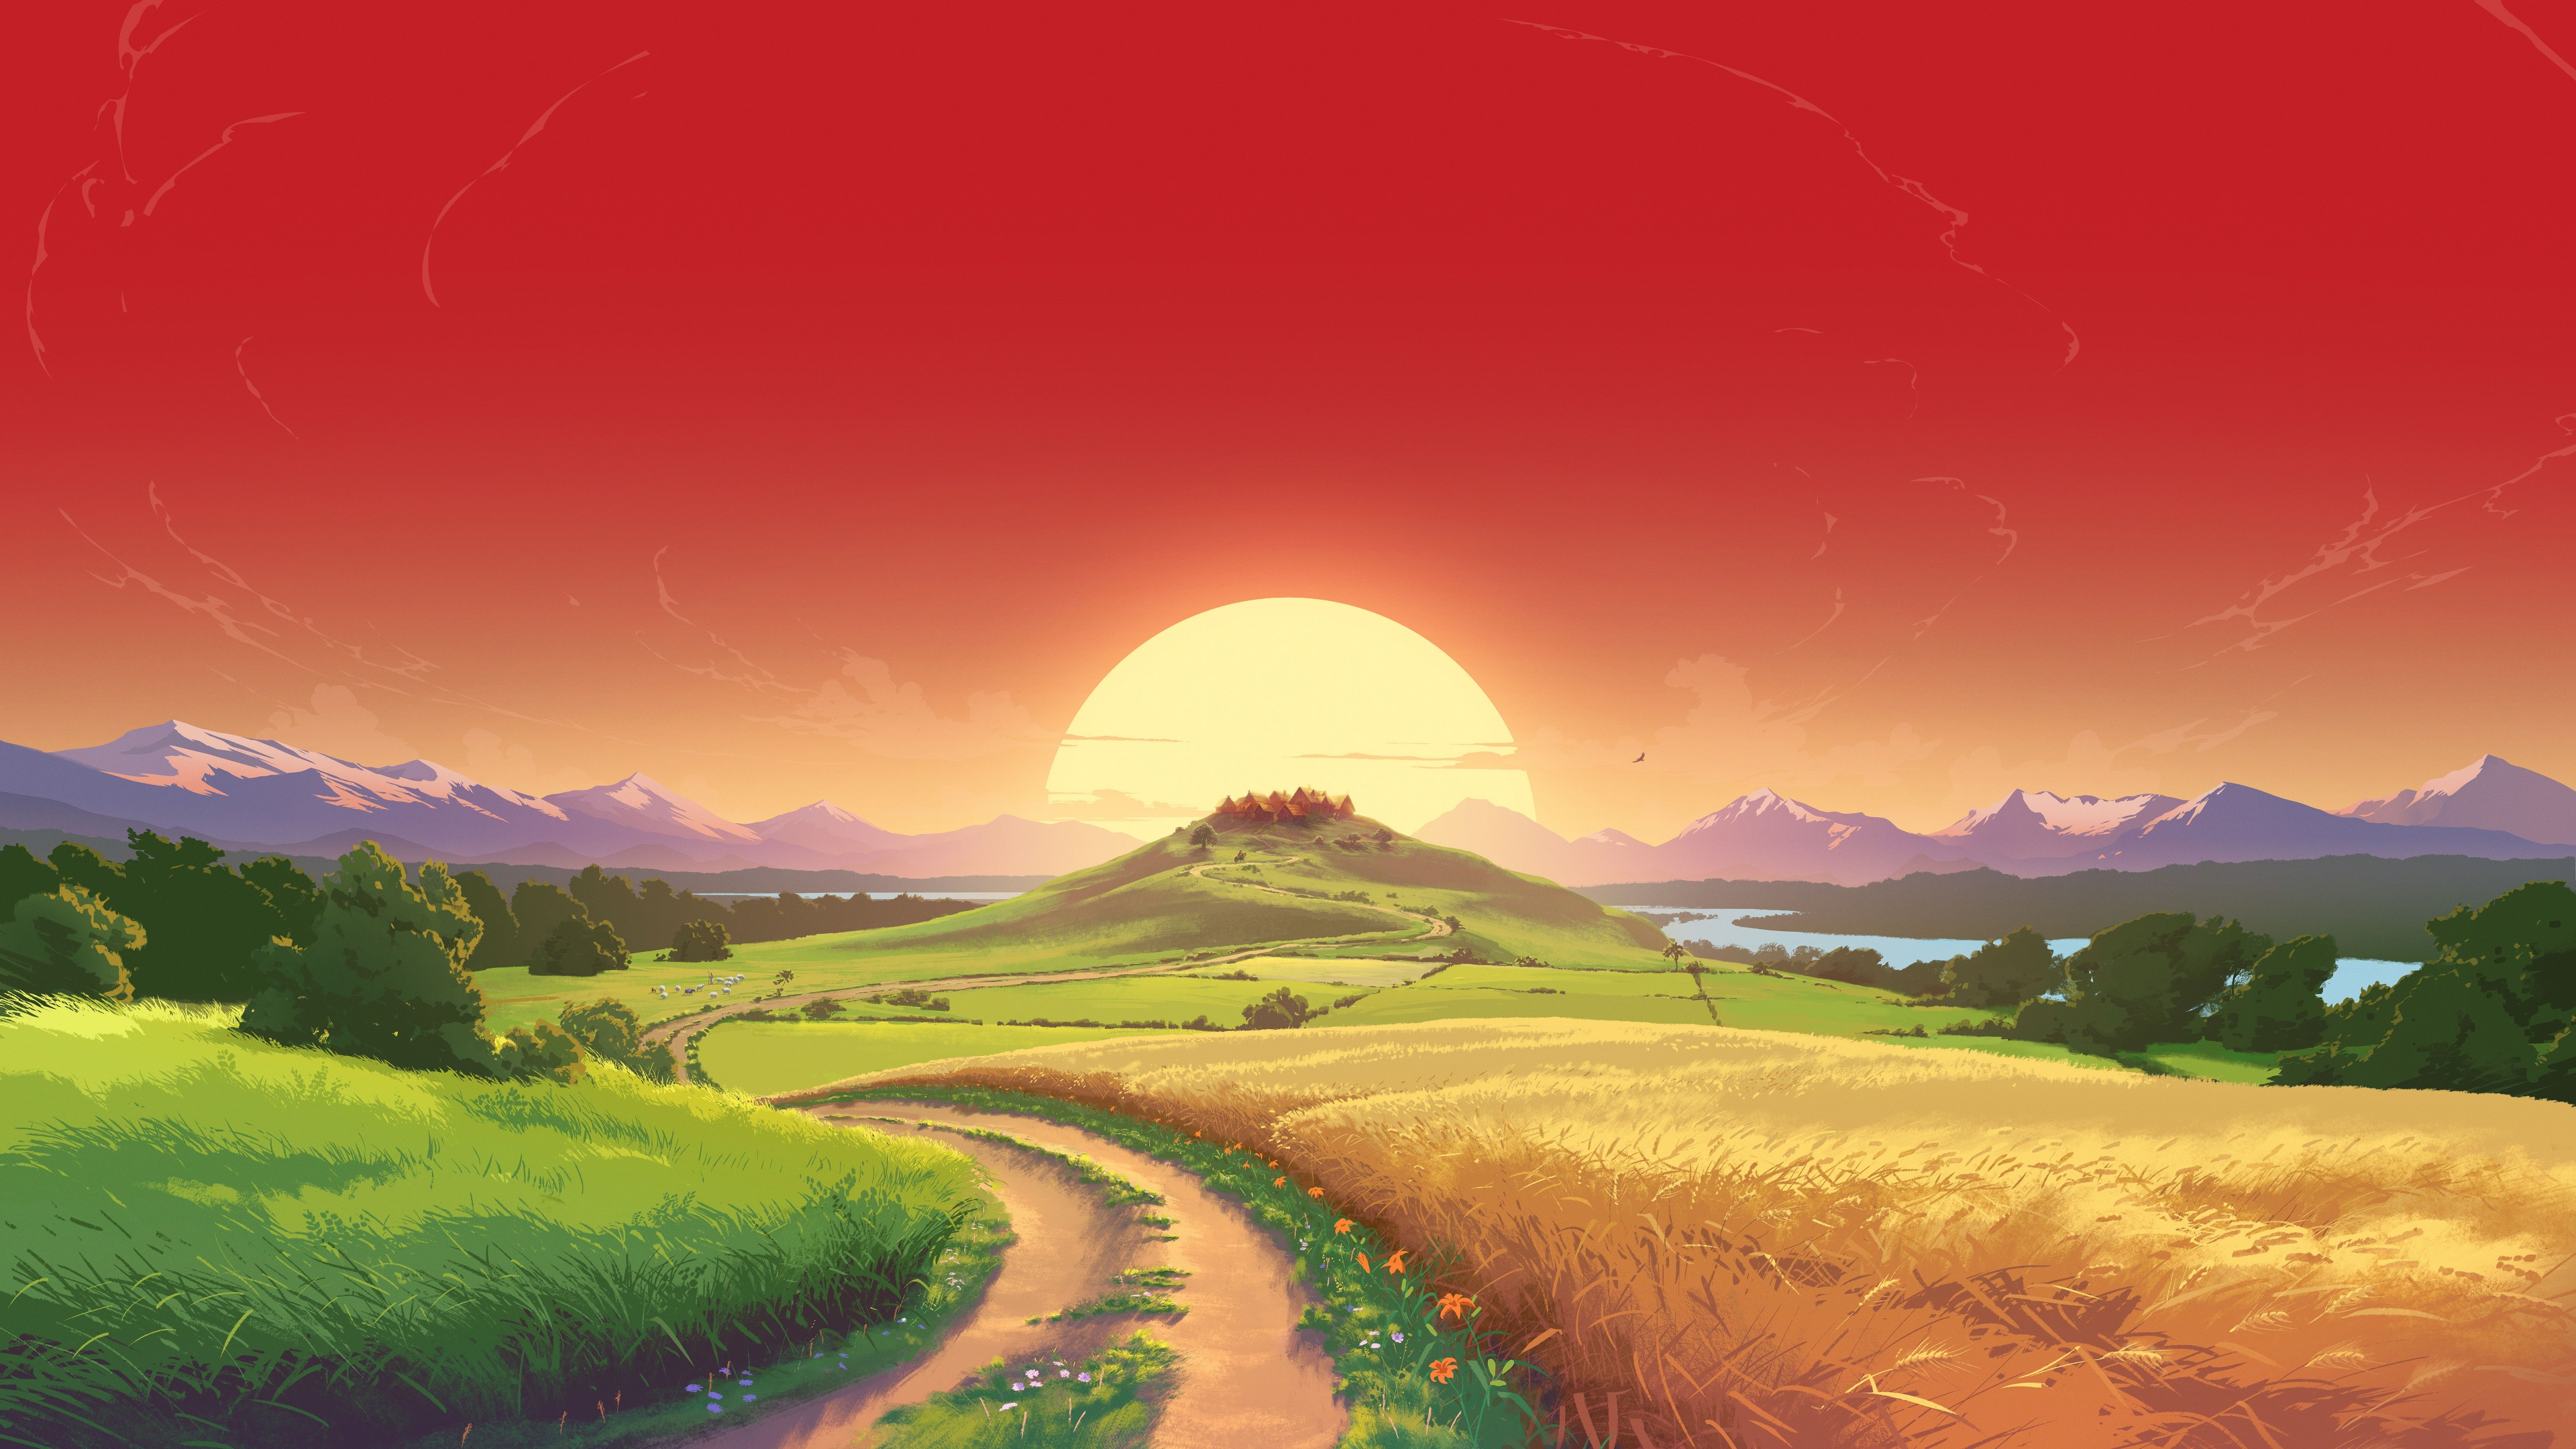 Amazing Landscape 4k Wallpaper Catan VR  Game